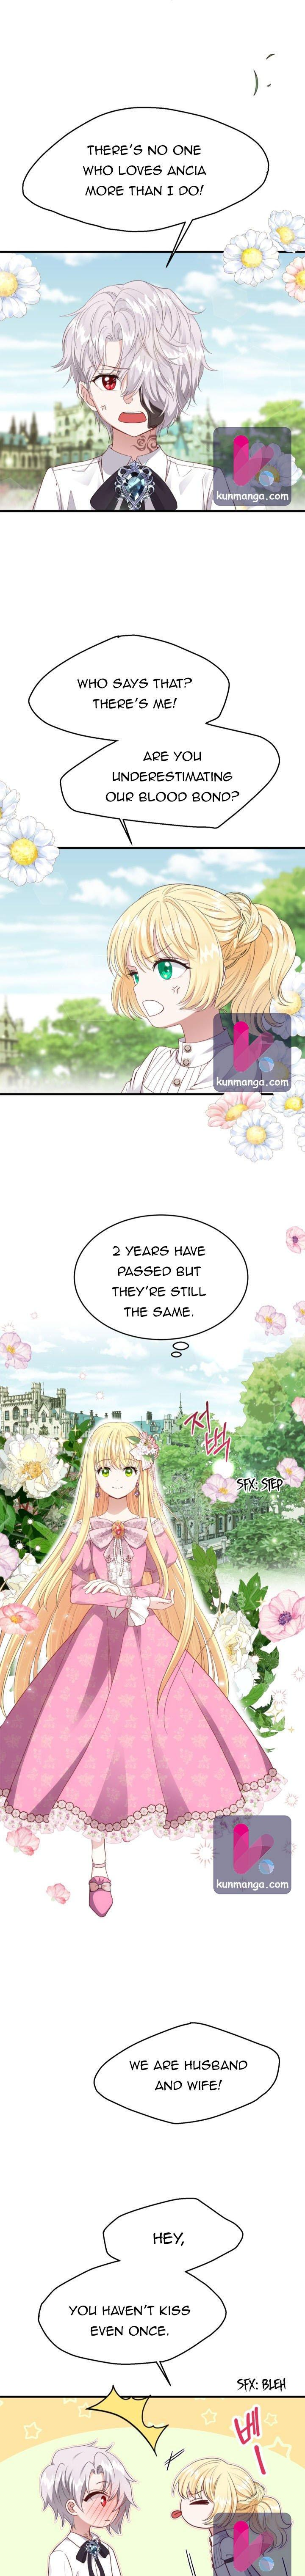 I Became The Wife Of The Monstrous Crown Prince Chapter 26.5 page 1 - Mangakakalots.com